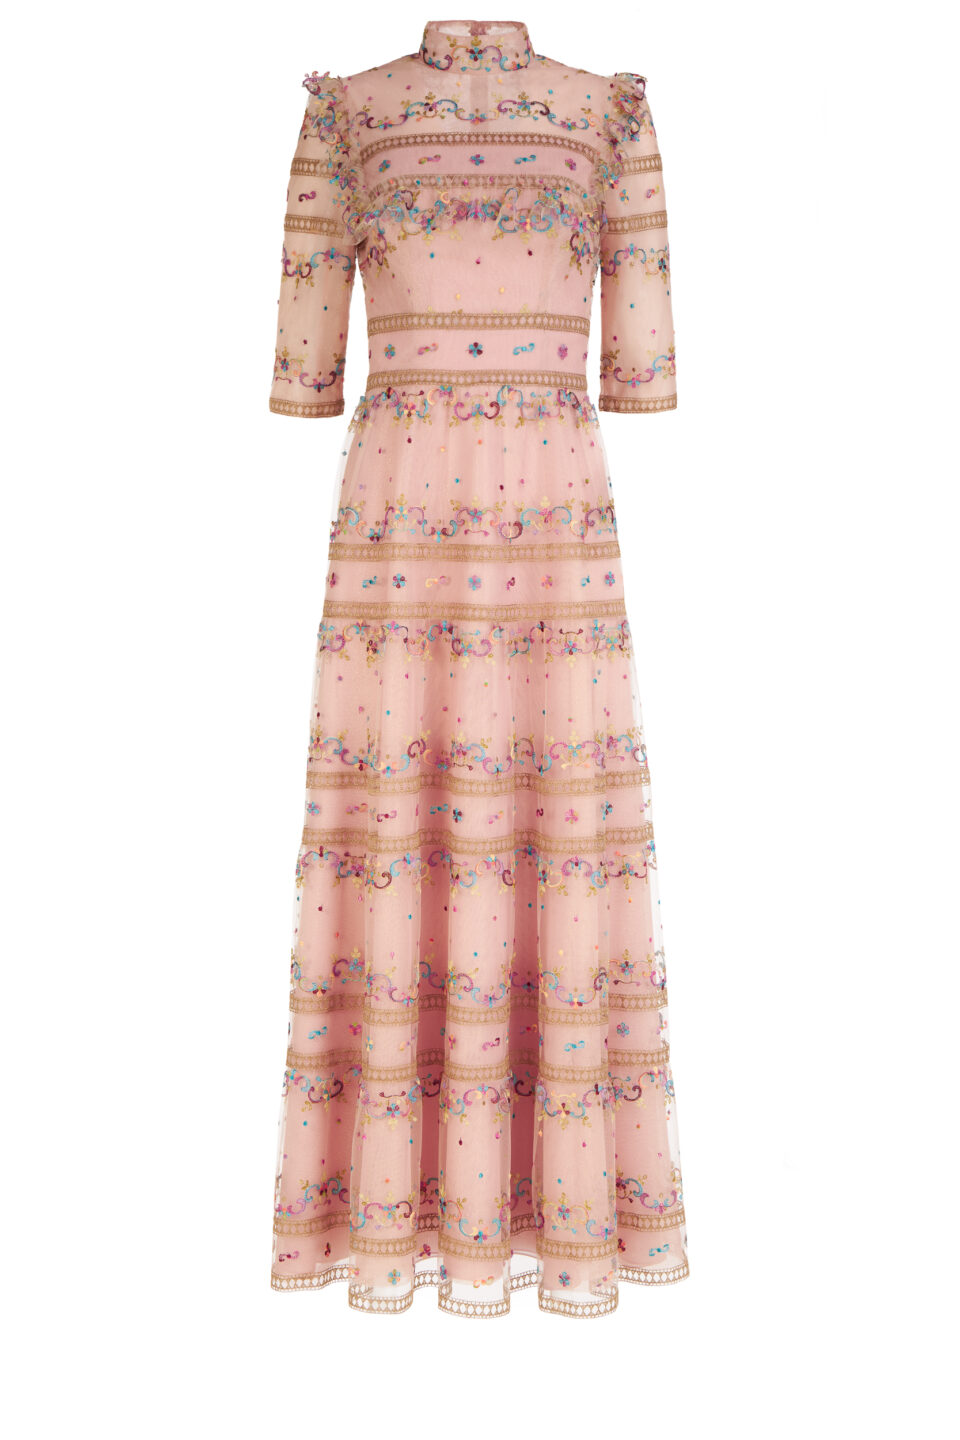 Scarlett FW2164 Pink Embroidered French Tulle Mock-Neck Dress with Three-Quarter Sleeves & Ruffle Detail